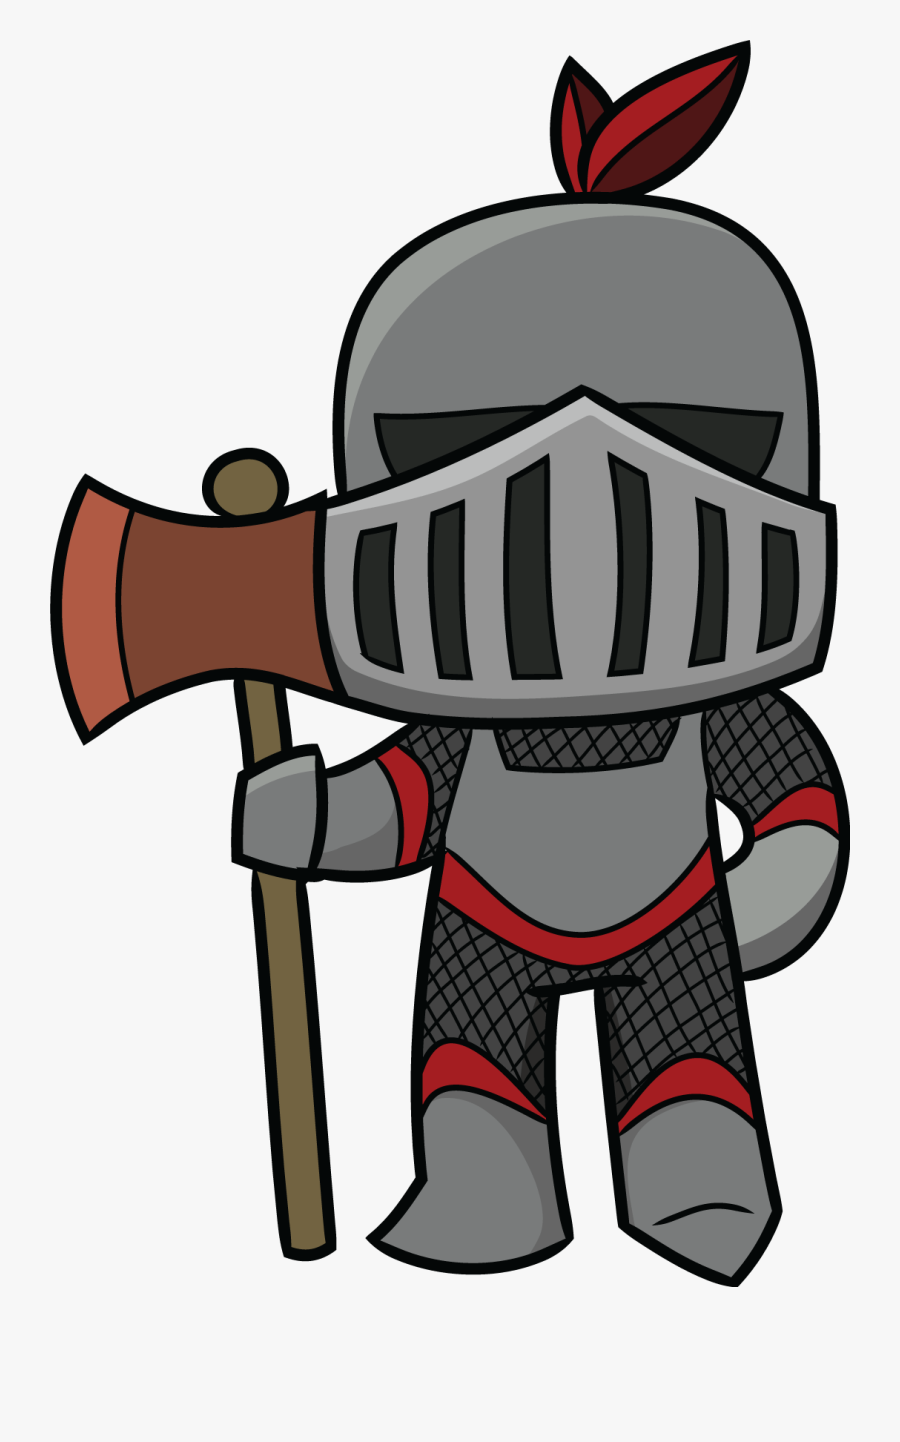 Cartoon Knight Clipart - Knights Middle Ages Clipart, Transparent Clipart